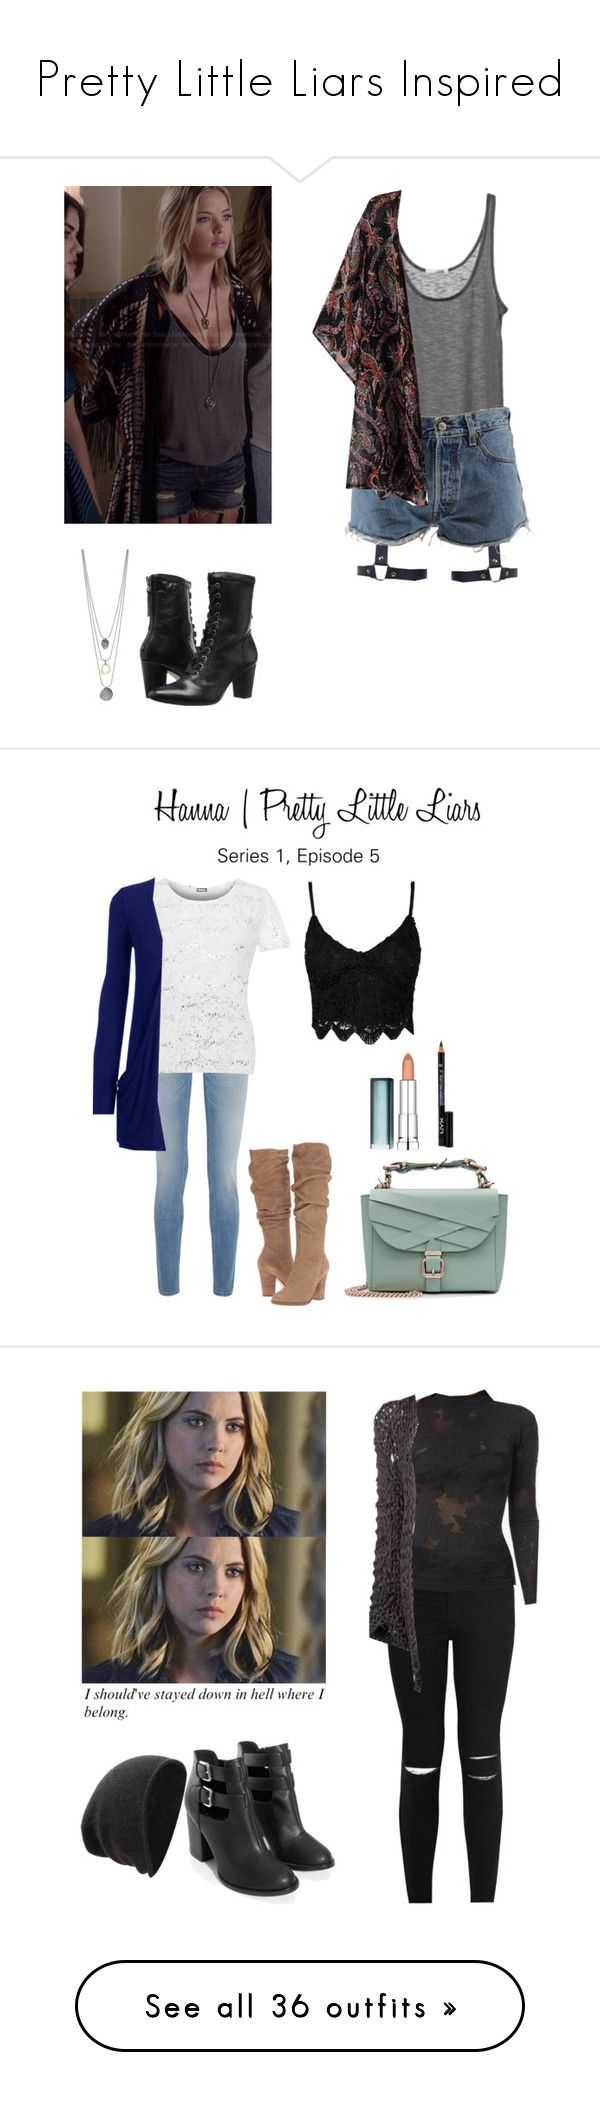 """""""Pretty Little Liars Inspired"""" by starrydancer ❤ liked on Polyvore featuring Levi's, Johnston & Murphy, Givenchy, WearAll, Steve Madden, Marina Hoermanseder, NYX, Maybelline, cute and PrettyLittleLiars"""